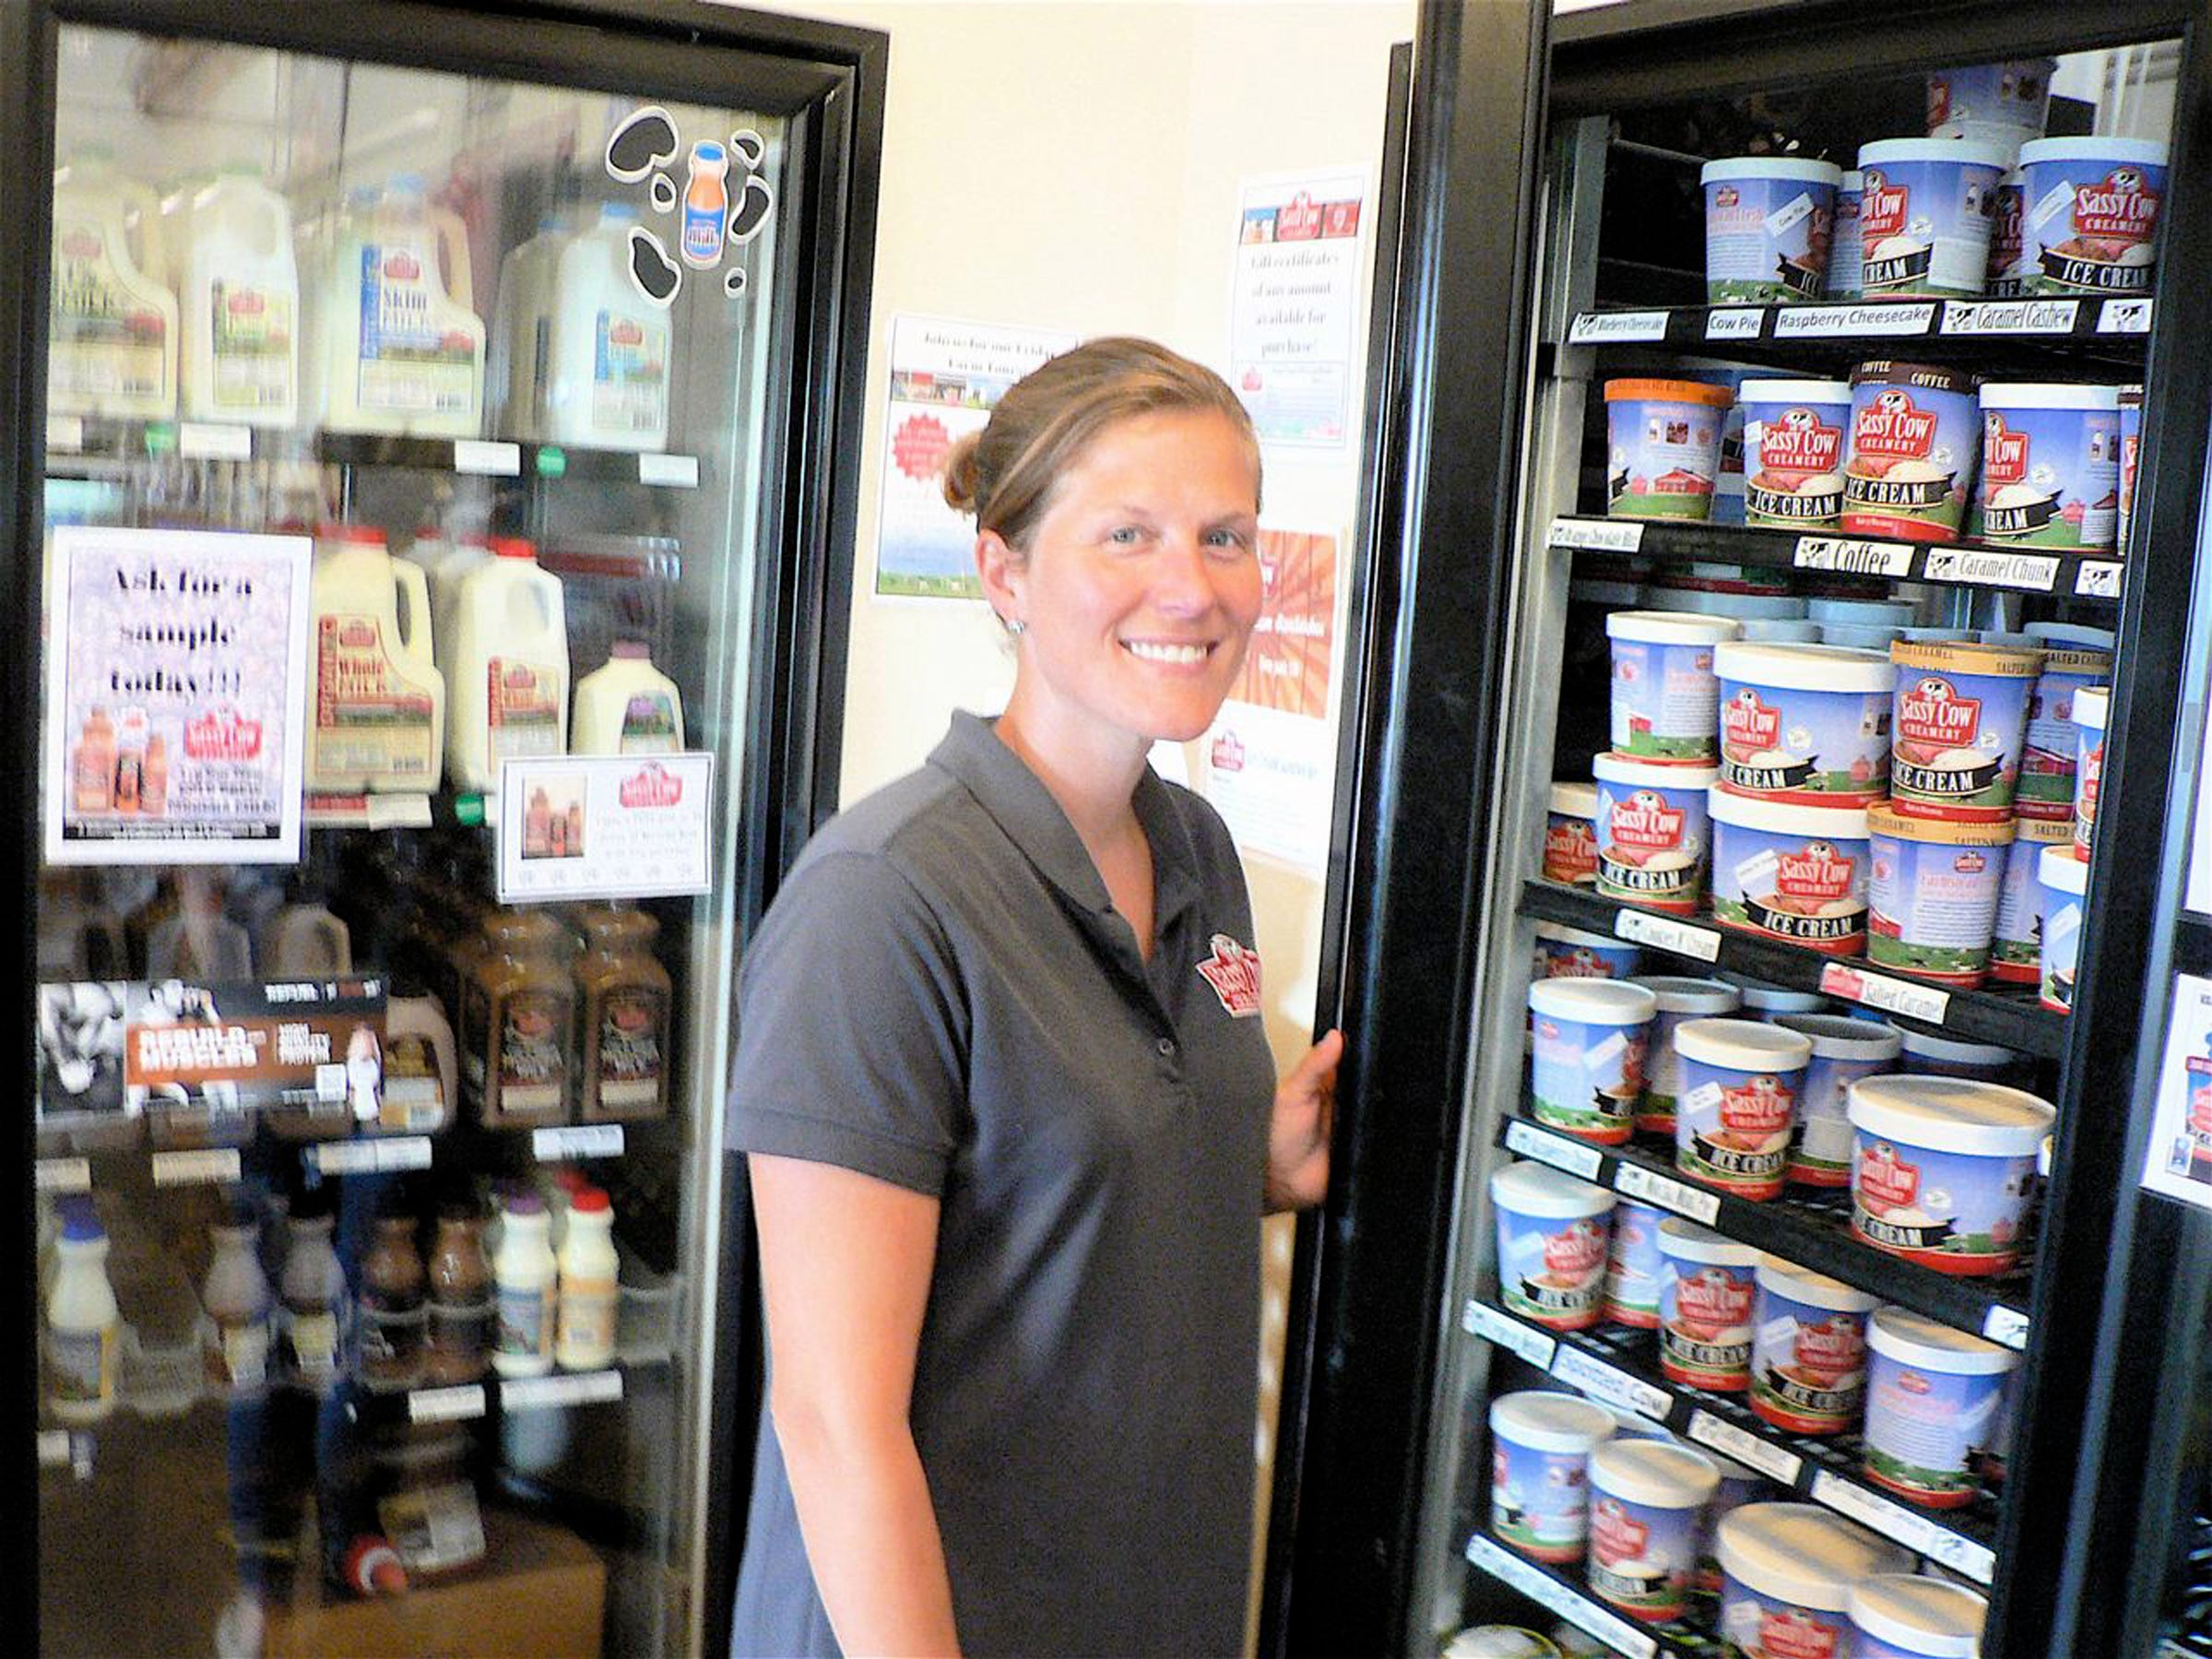 Kara Kasten Olson, store manager, has been with Sassy cow from day one.